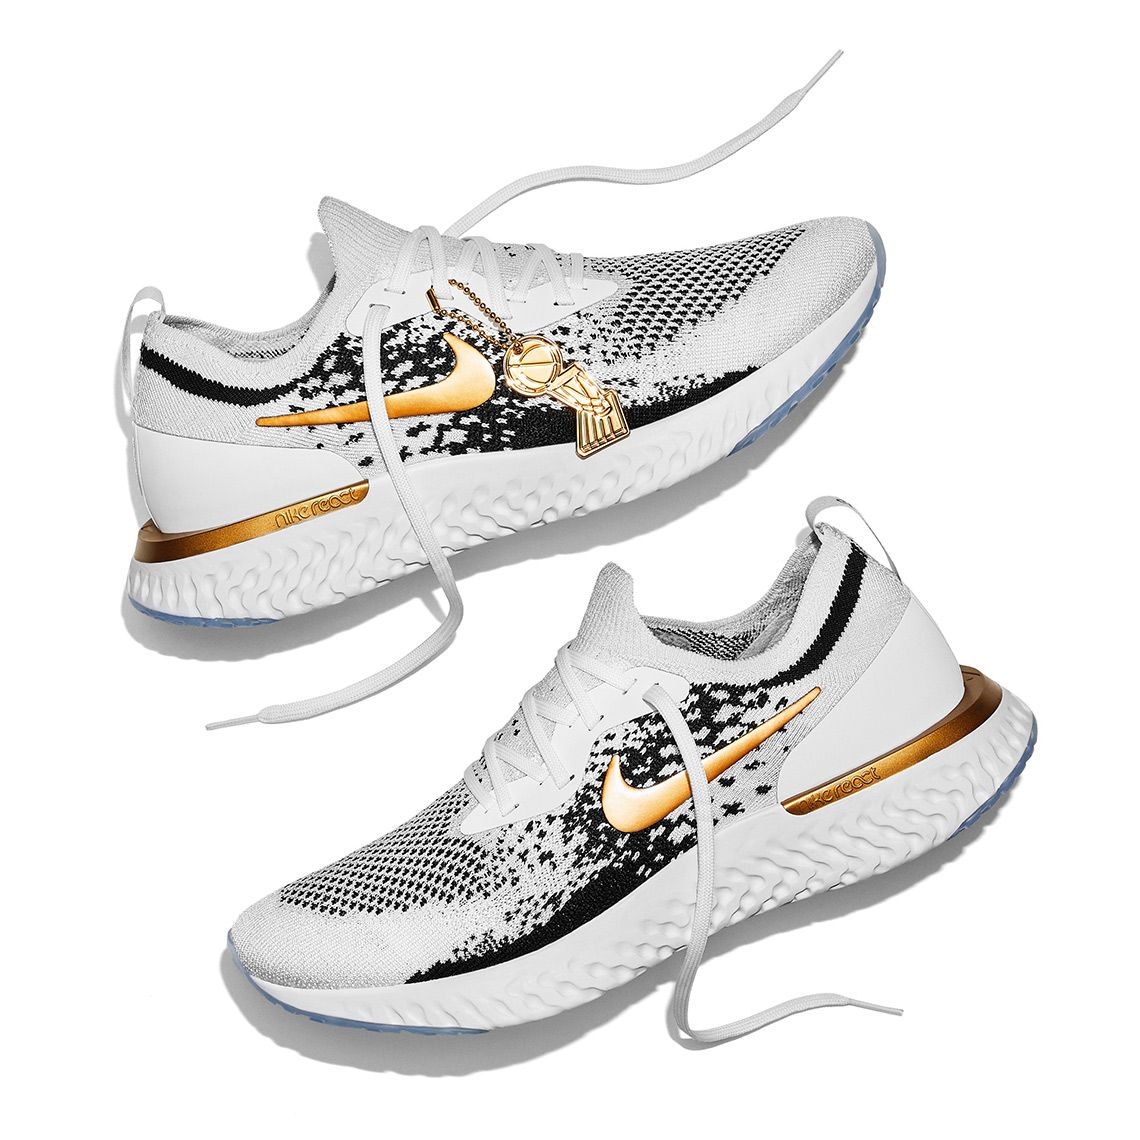 42978519c41c0 Nike Epic React Flyknit NBA Champions Golden State Warriors PE ...